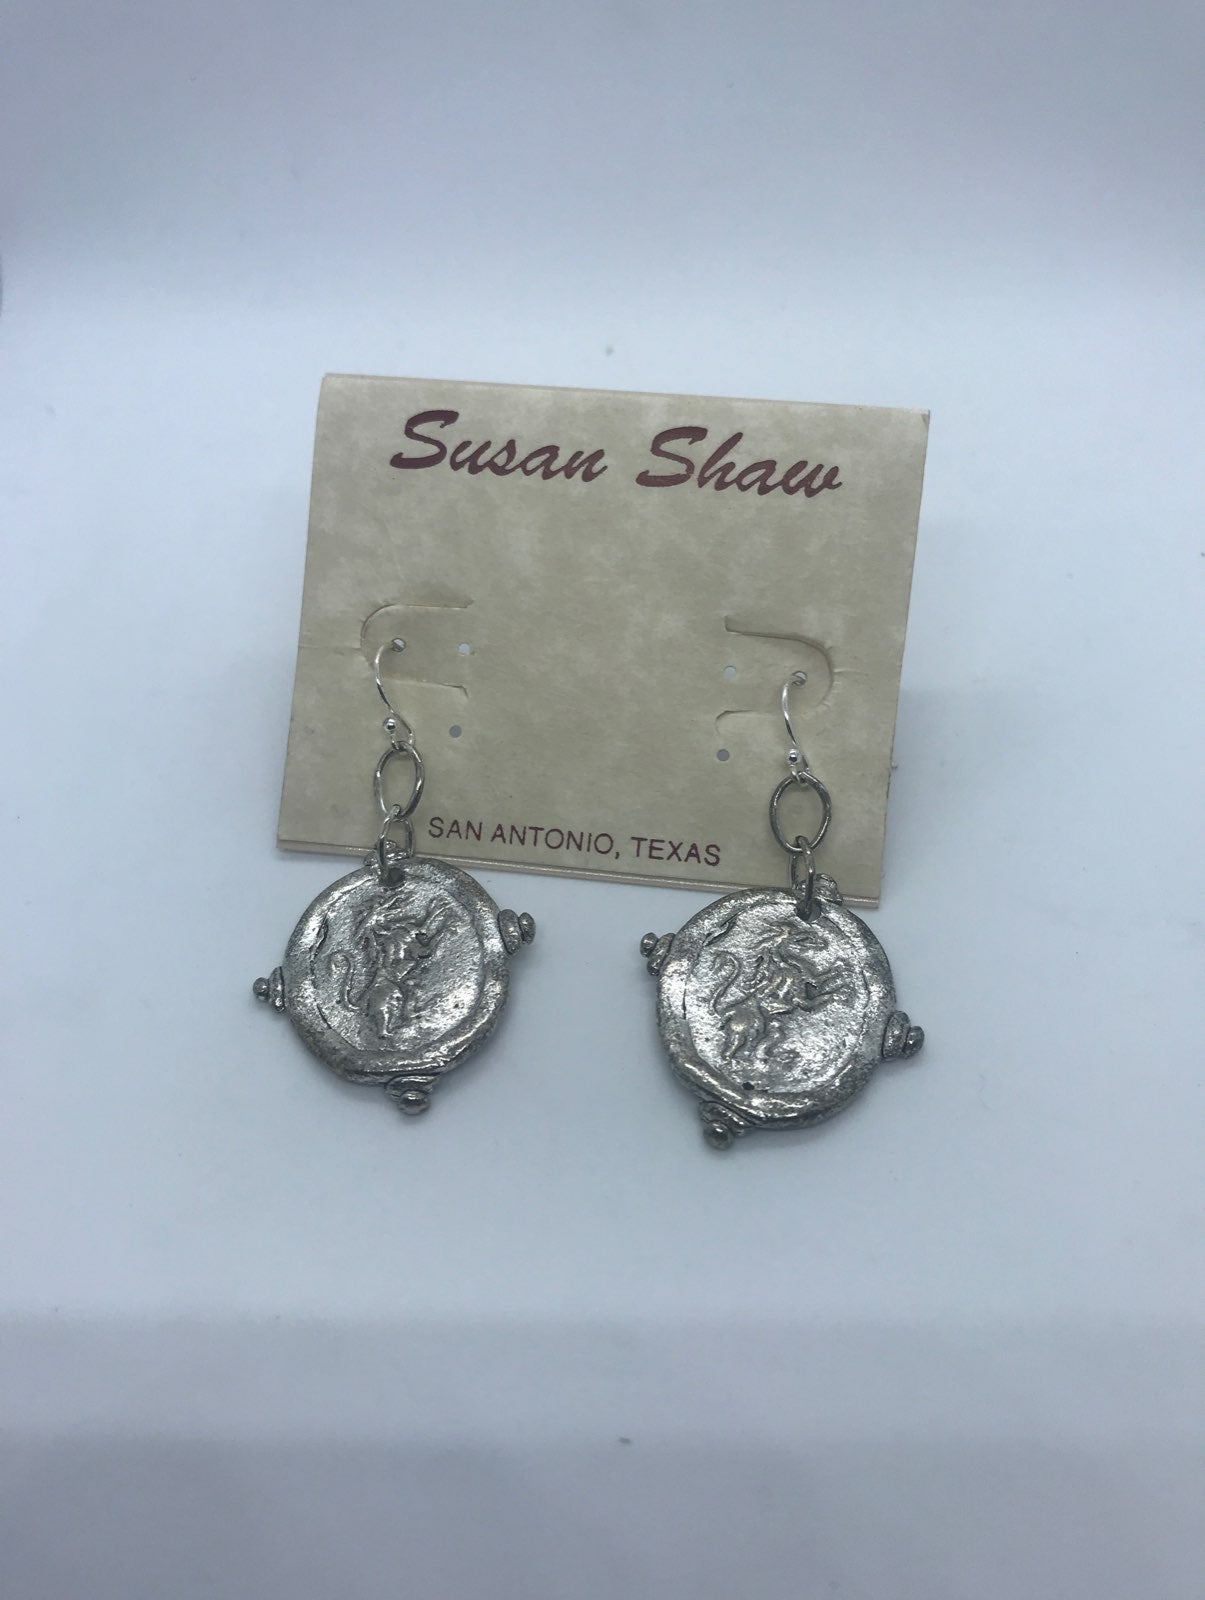 New Susan Shaw Standing Lion Earrings